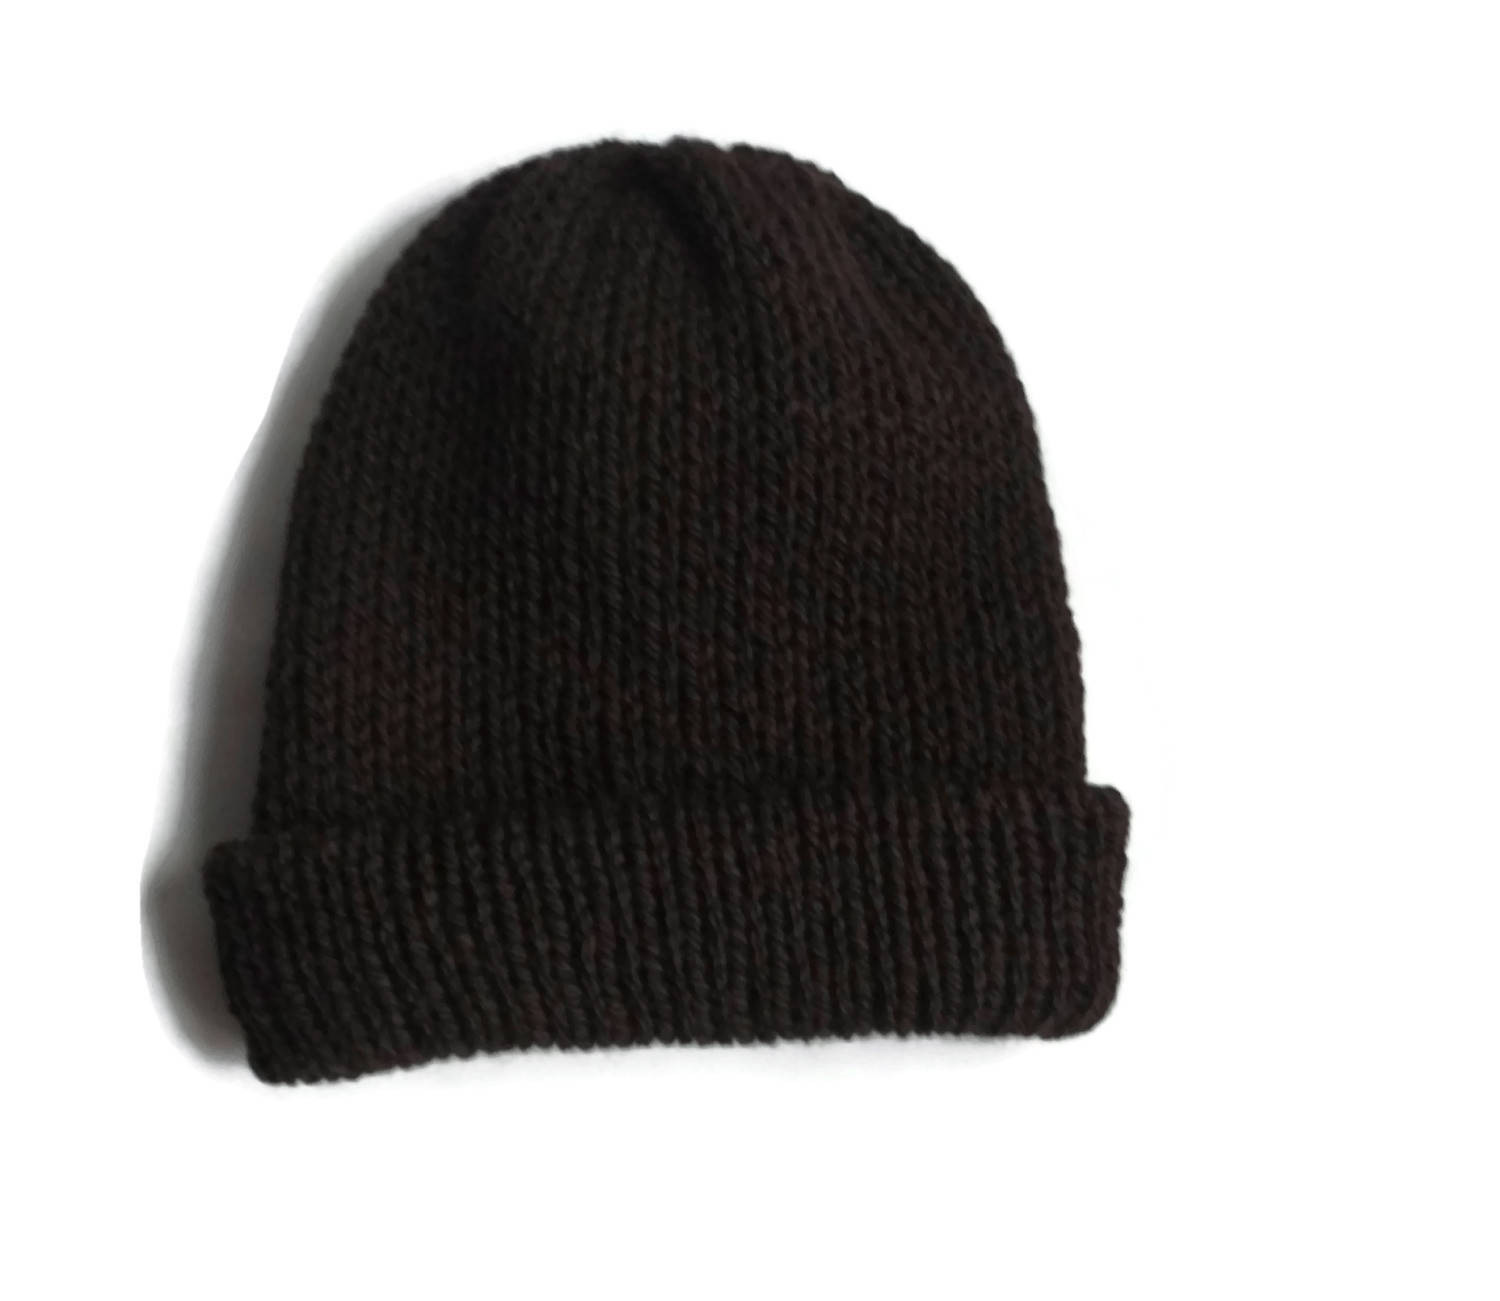 Awesome Mens Knit Hat Mens Knitted Hat Hand Knit Hat Knit Hat Men Mens Knit Caps Of Delightful 41 Ideas Mens Knit Caps